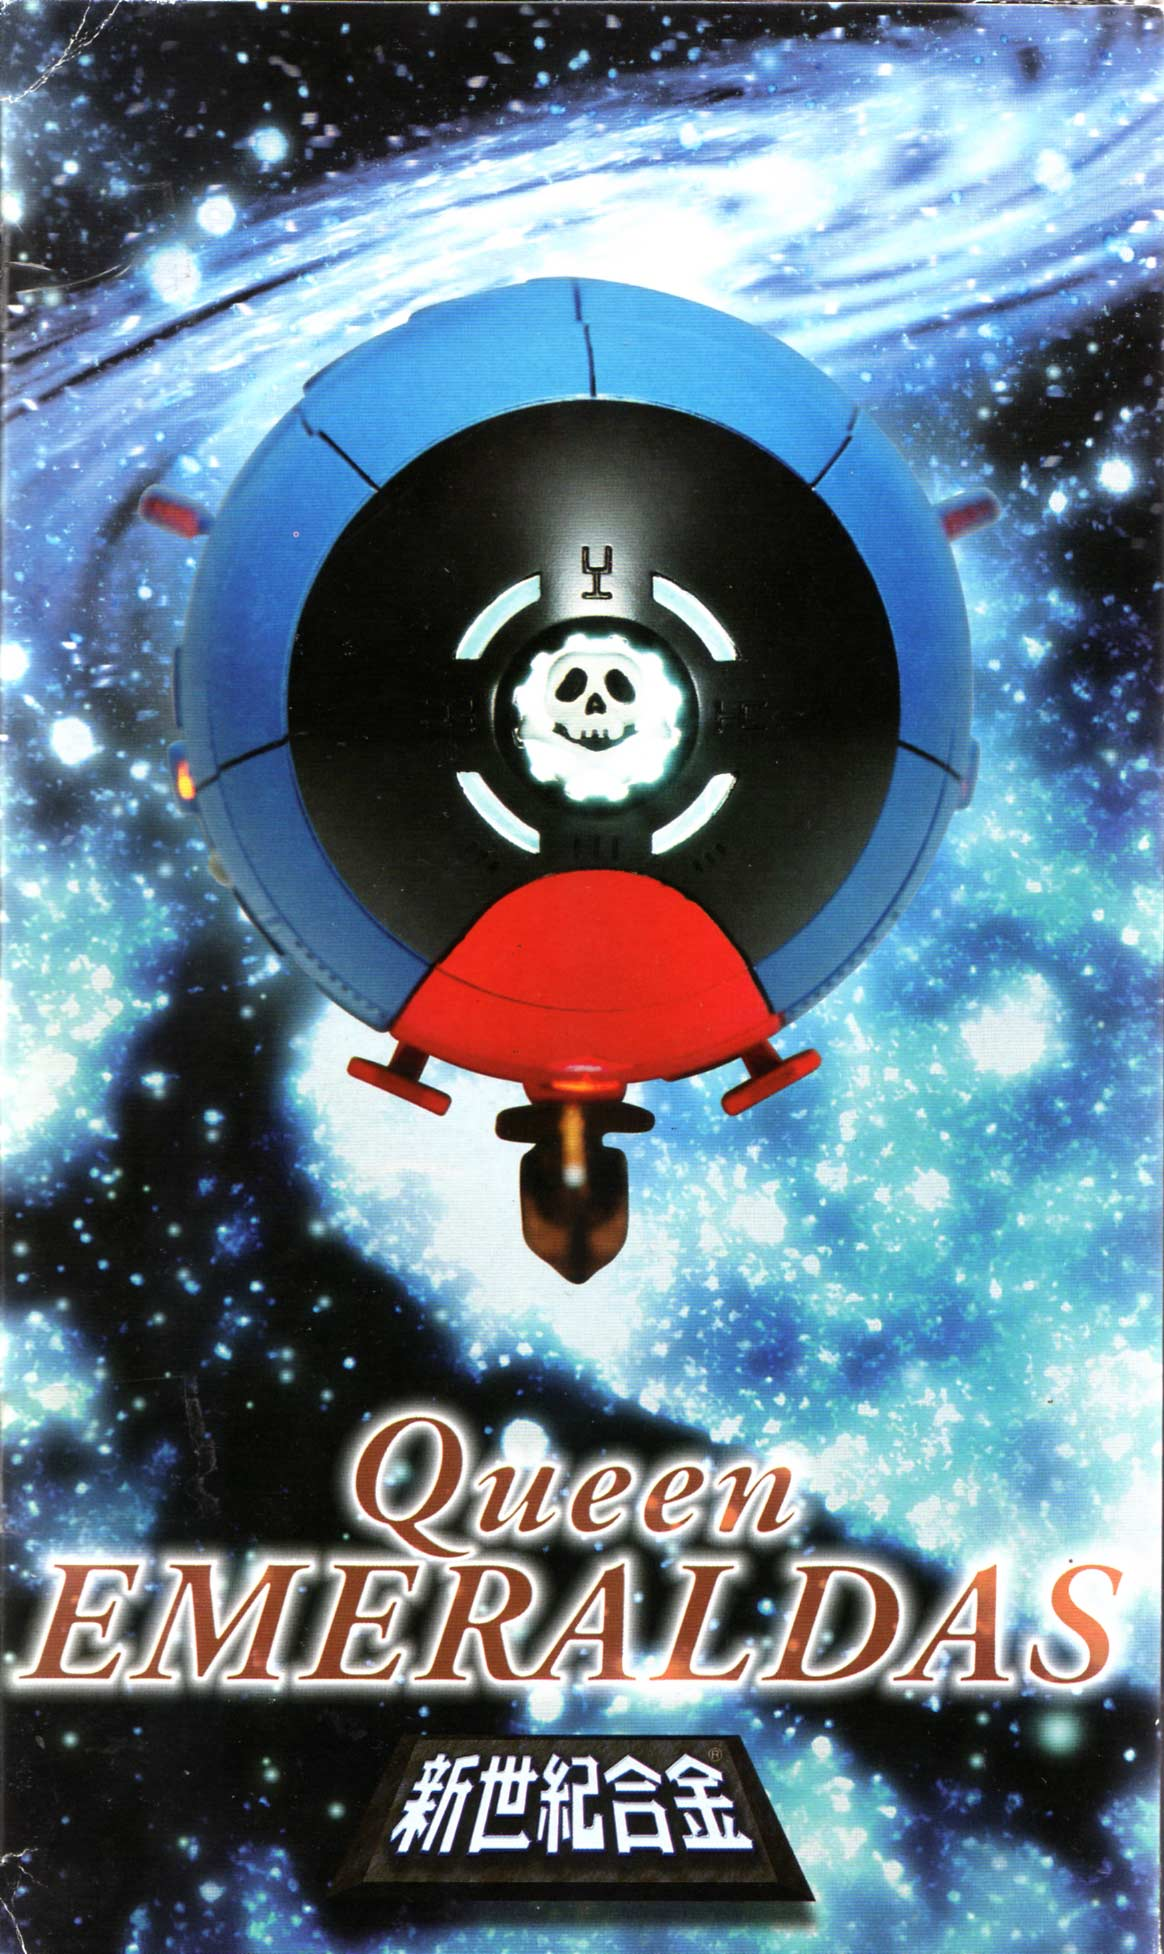 Ct gauche du packaging du Queen Emeraldas d&#039;Aoshima